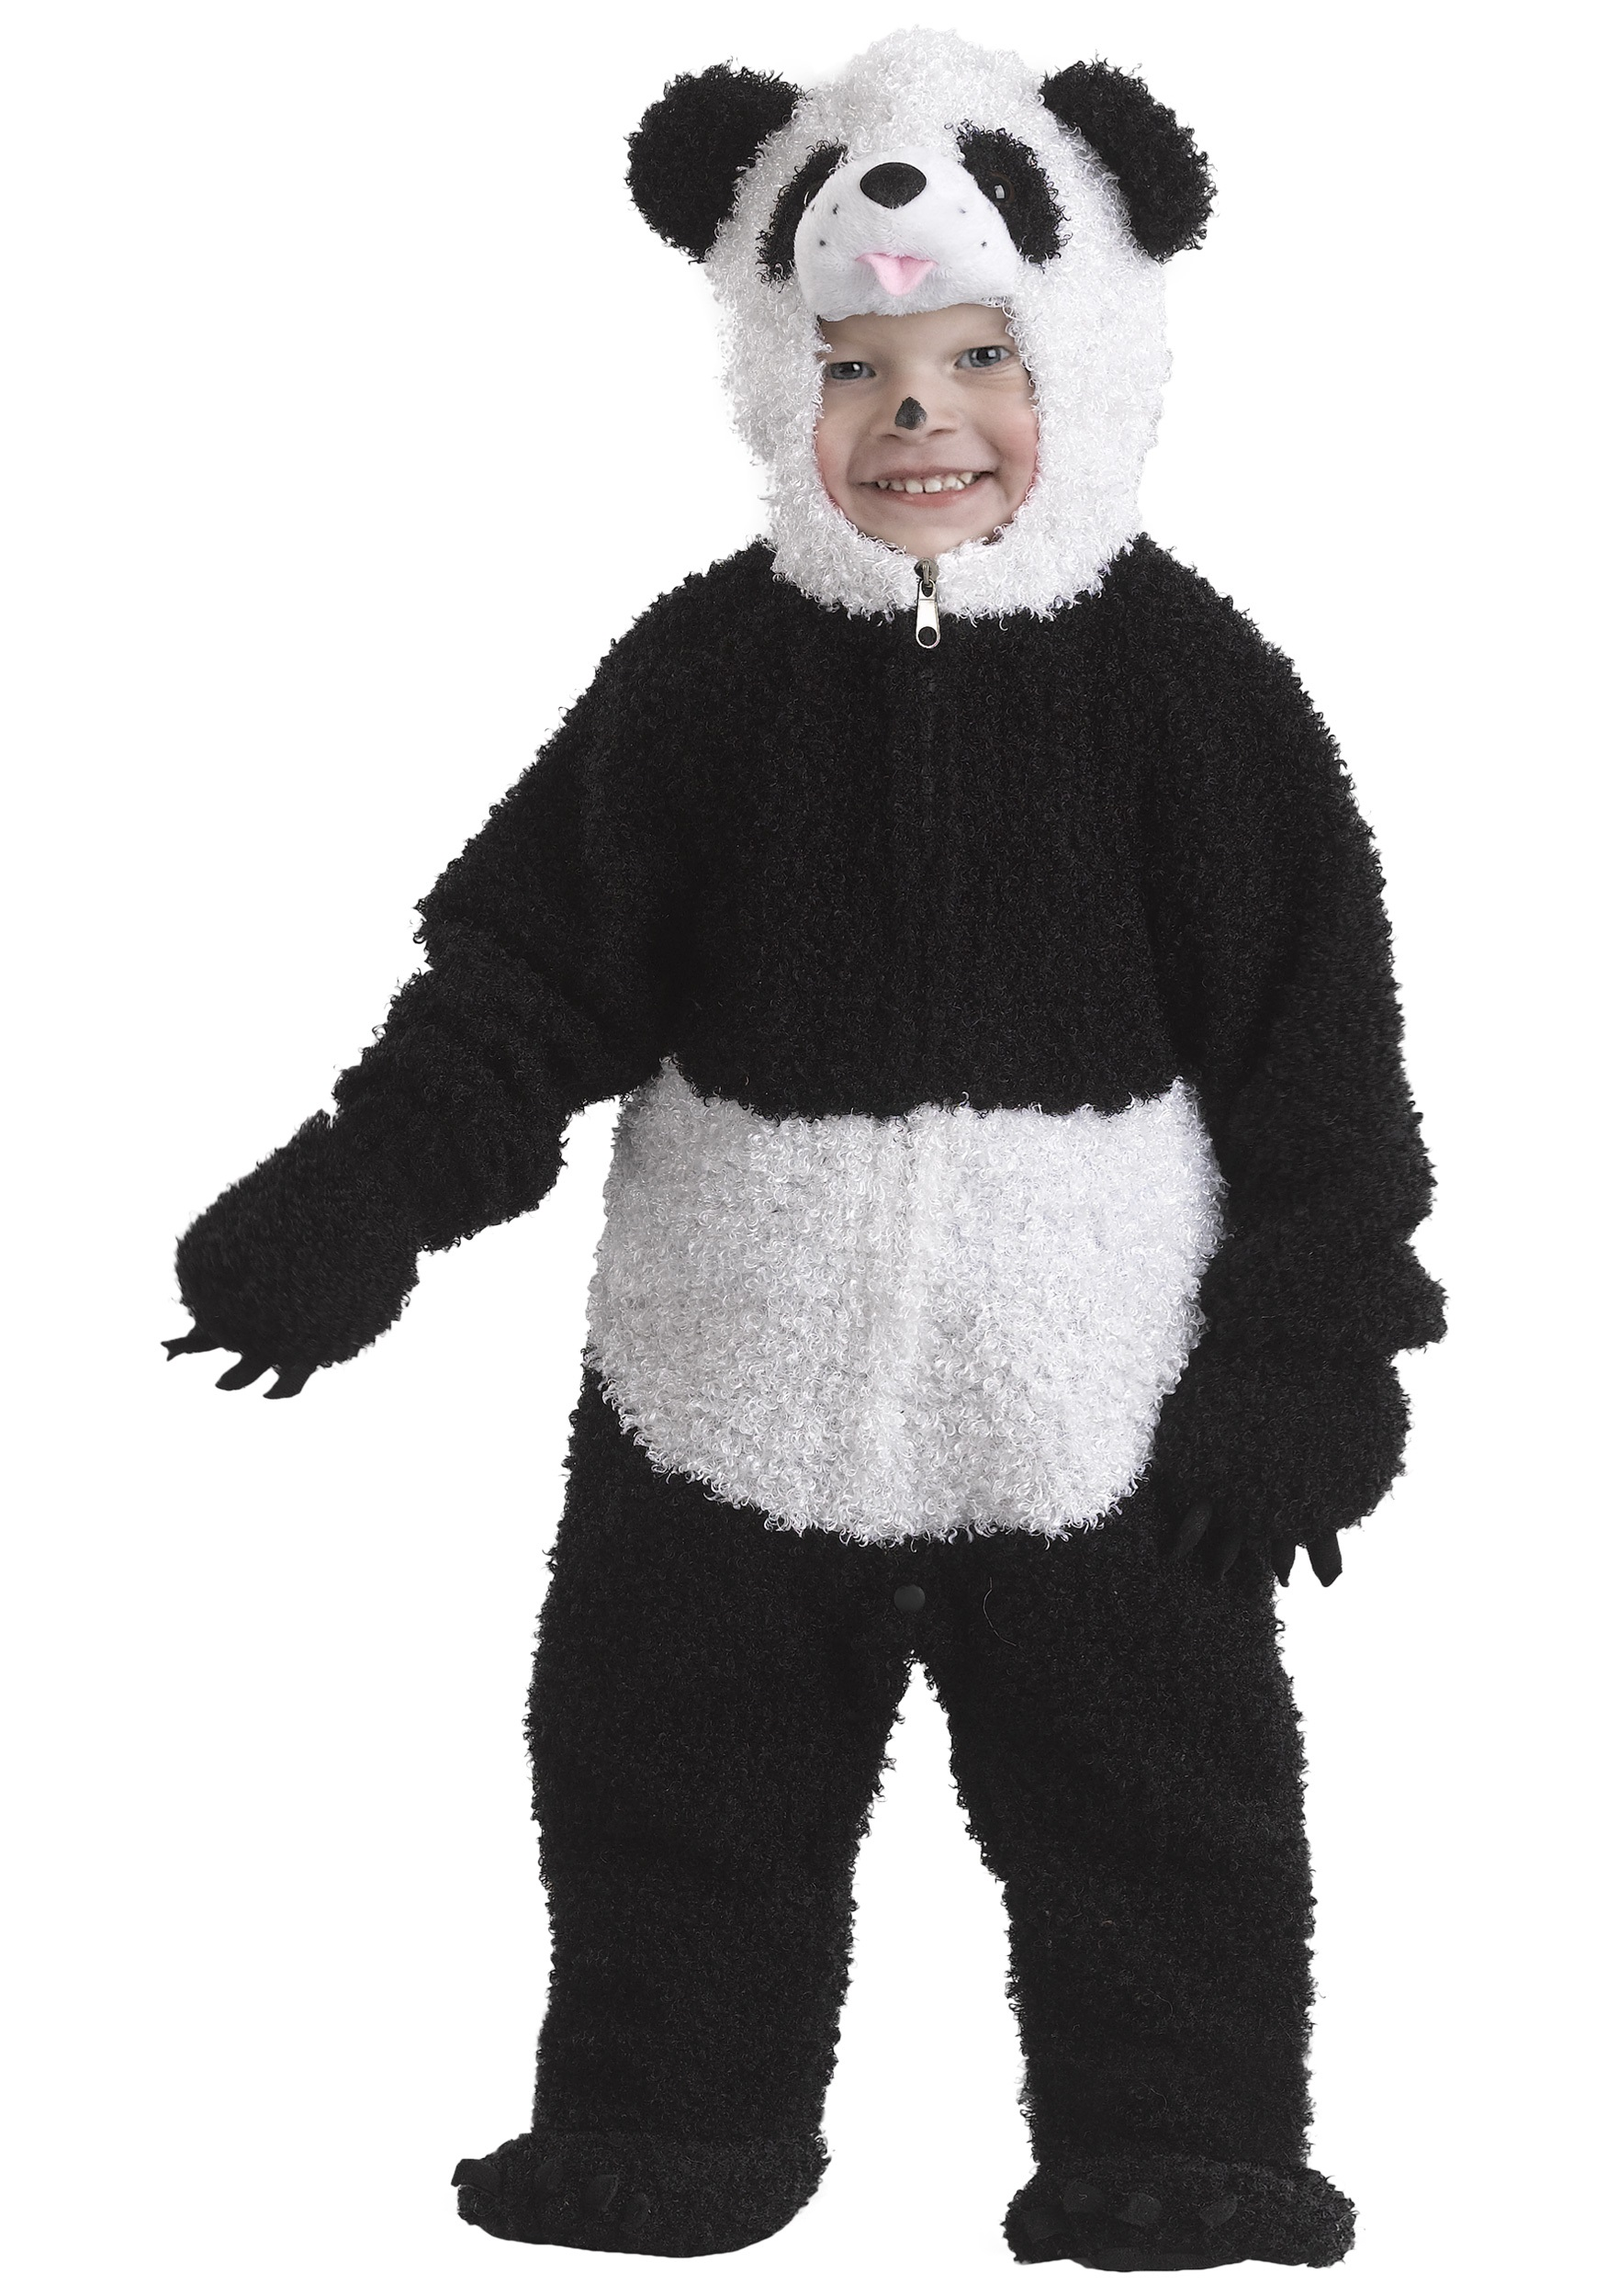 Product Features fun to dress-up with costumes and accessories baby play with all year.